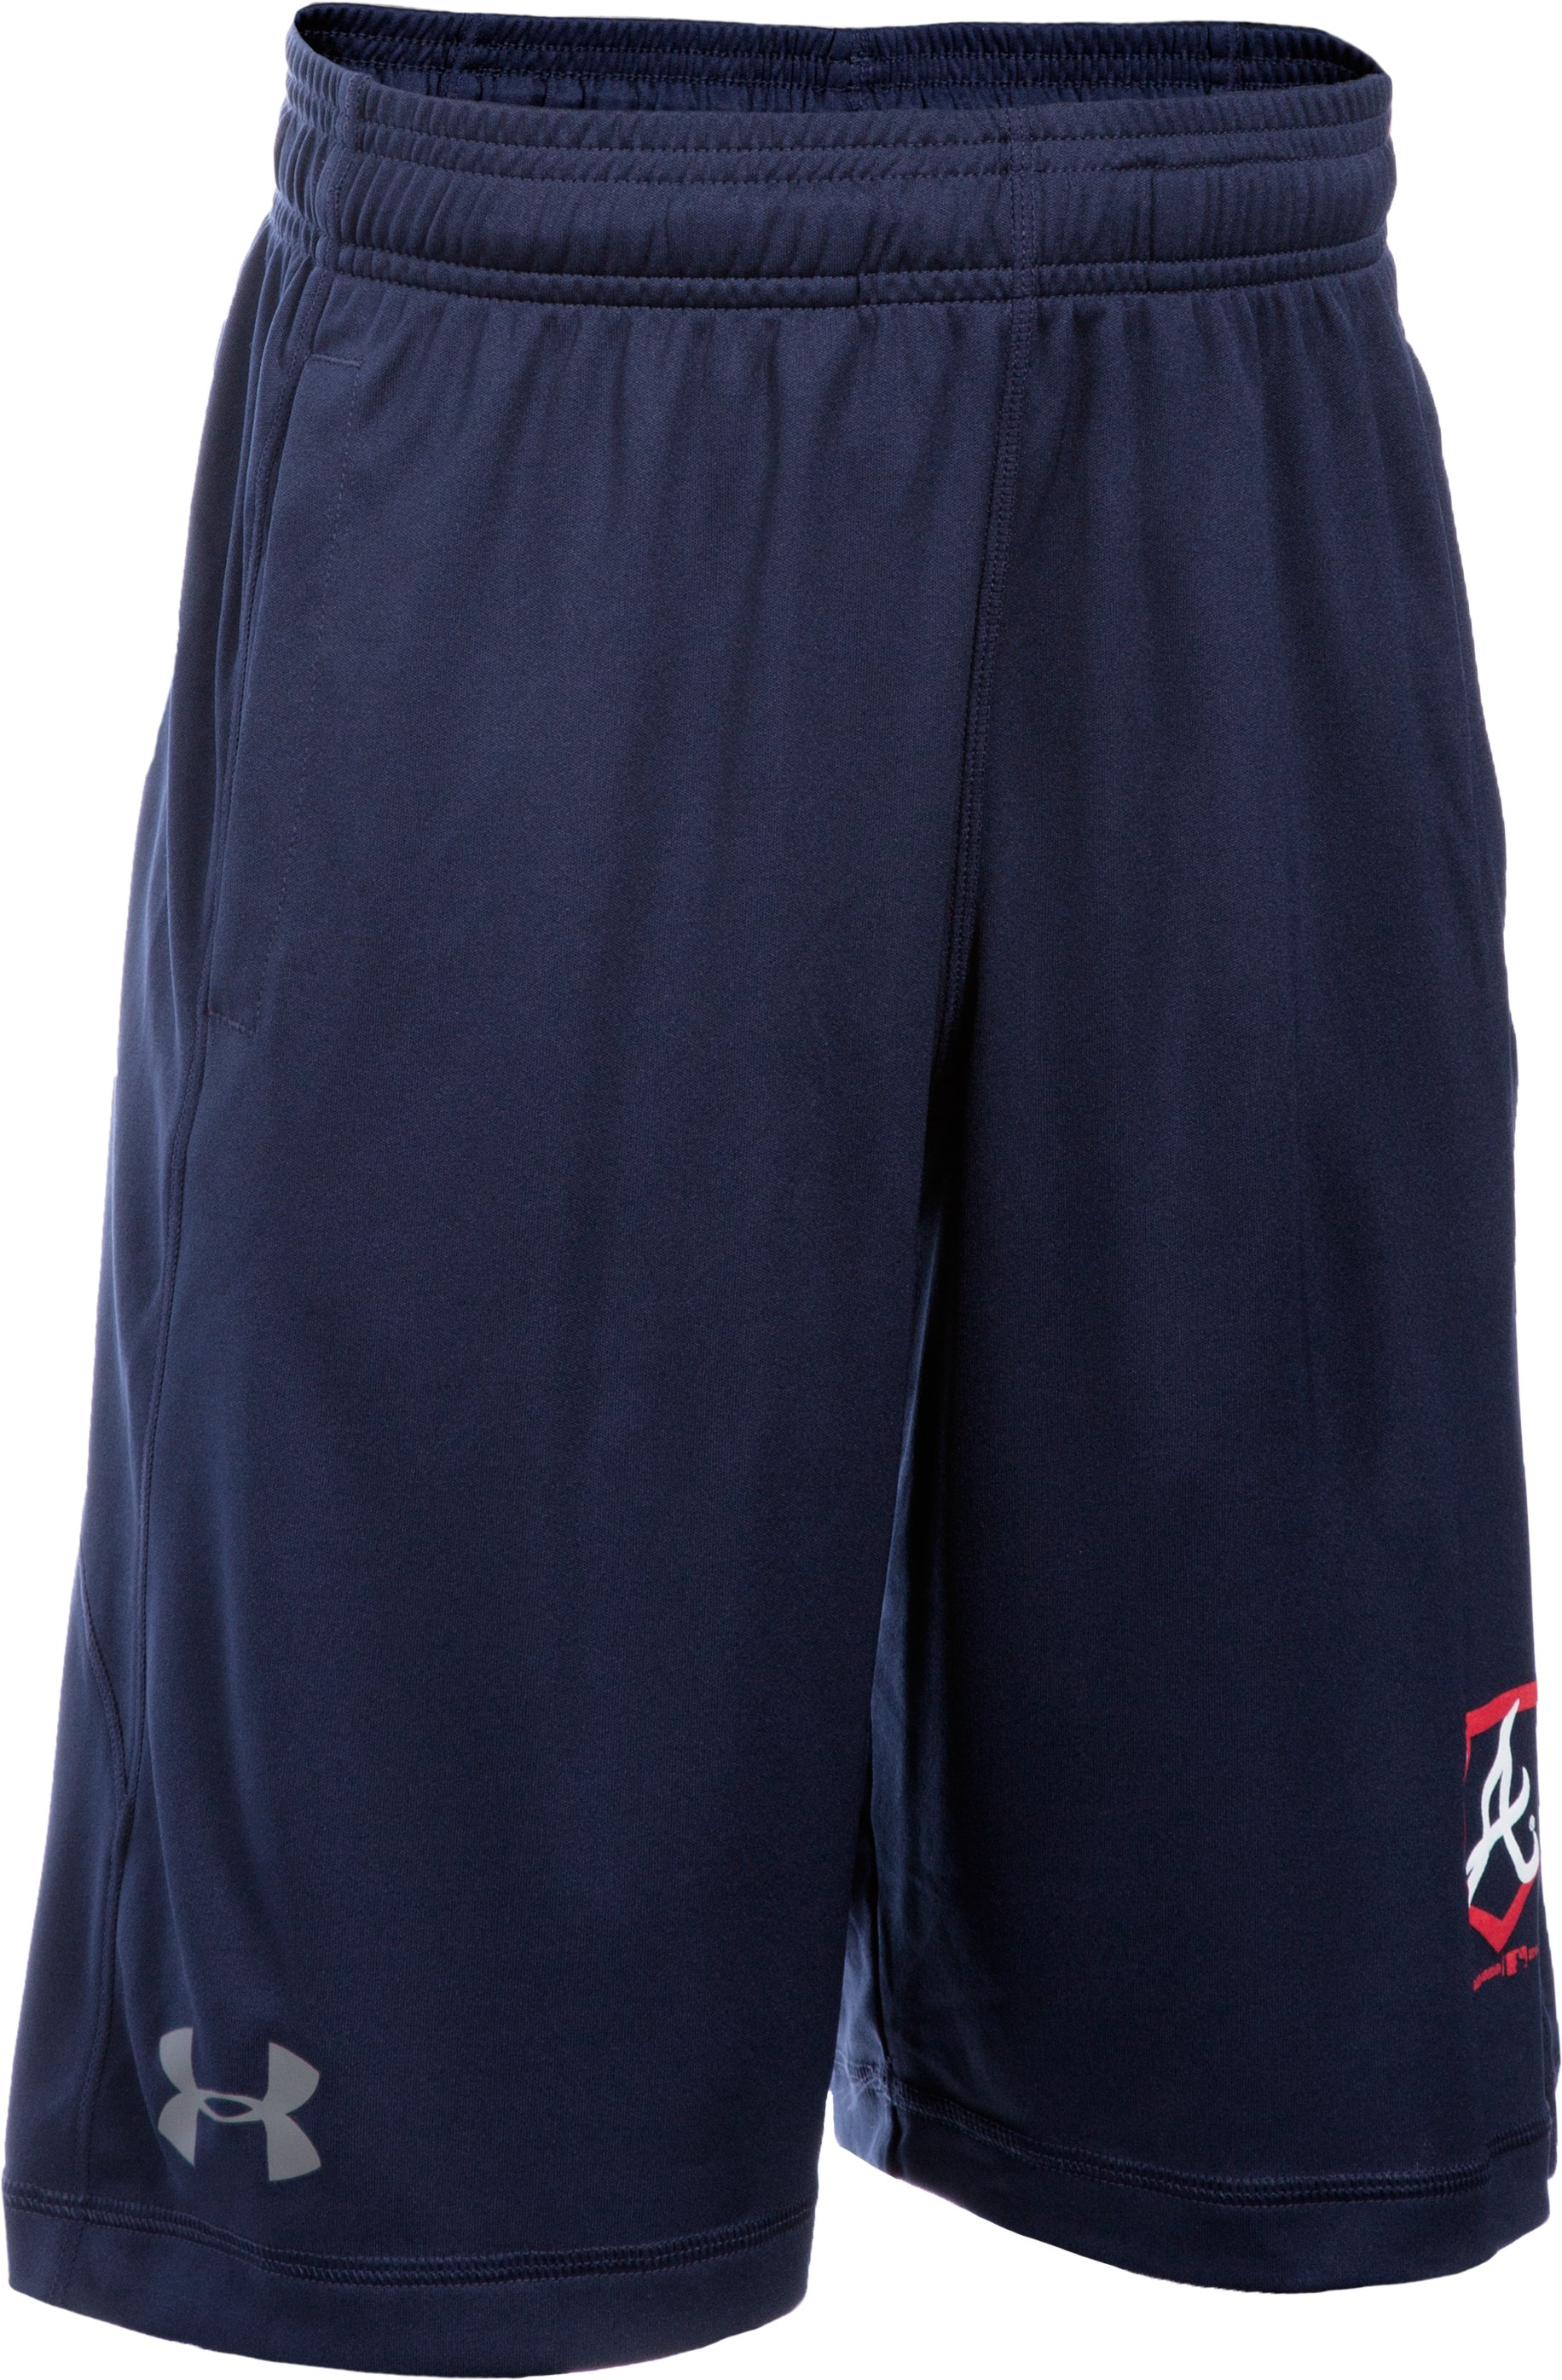 Boys' Atlanta Braves UA Raid Shorts, Midnight Navy, undefined